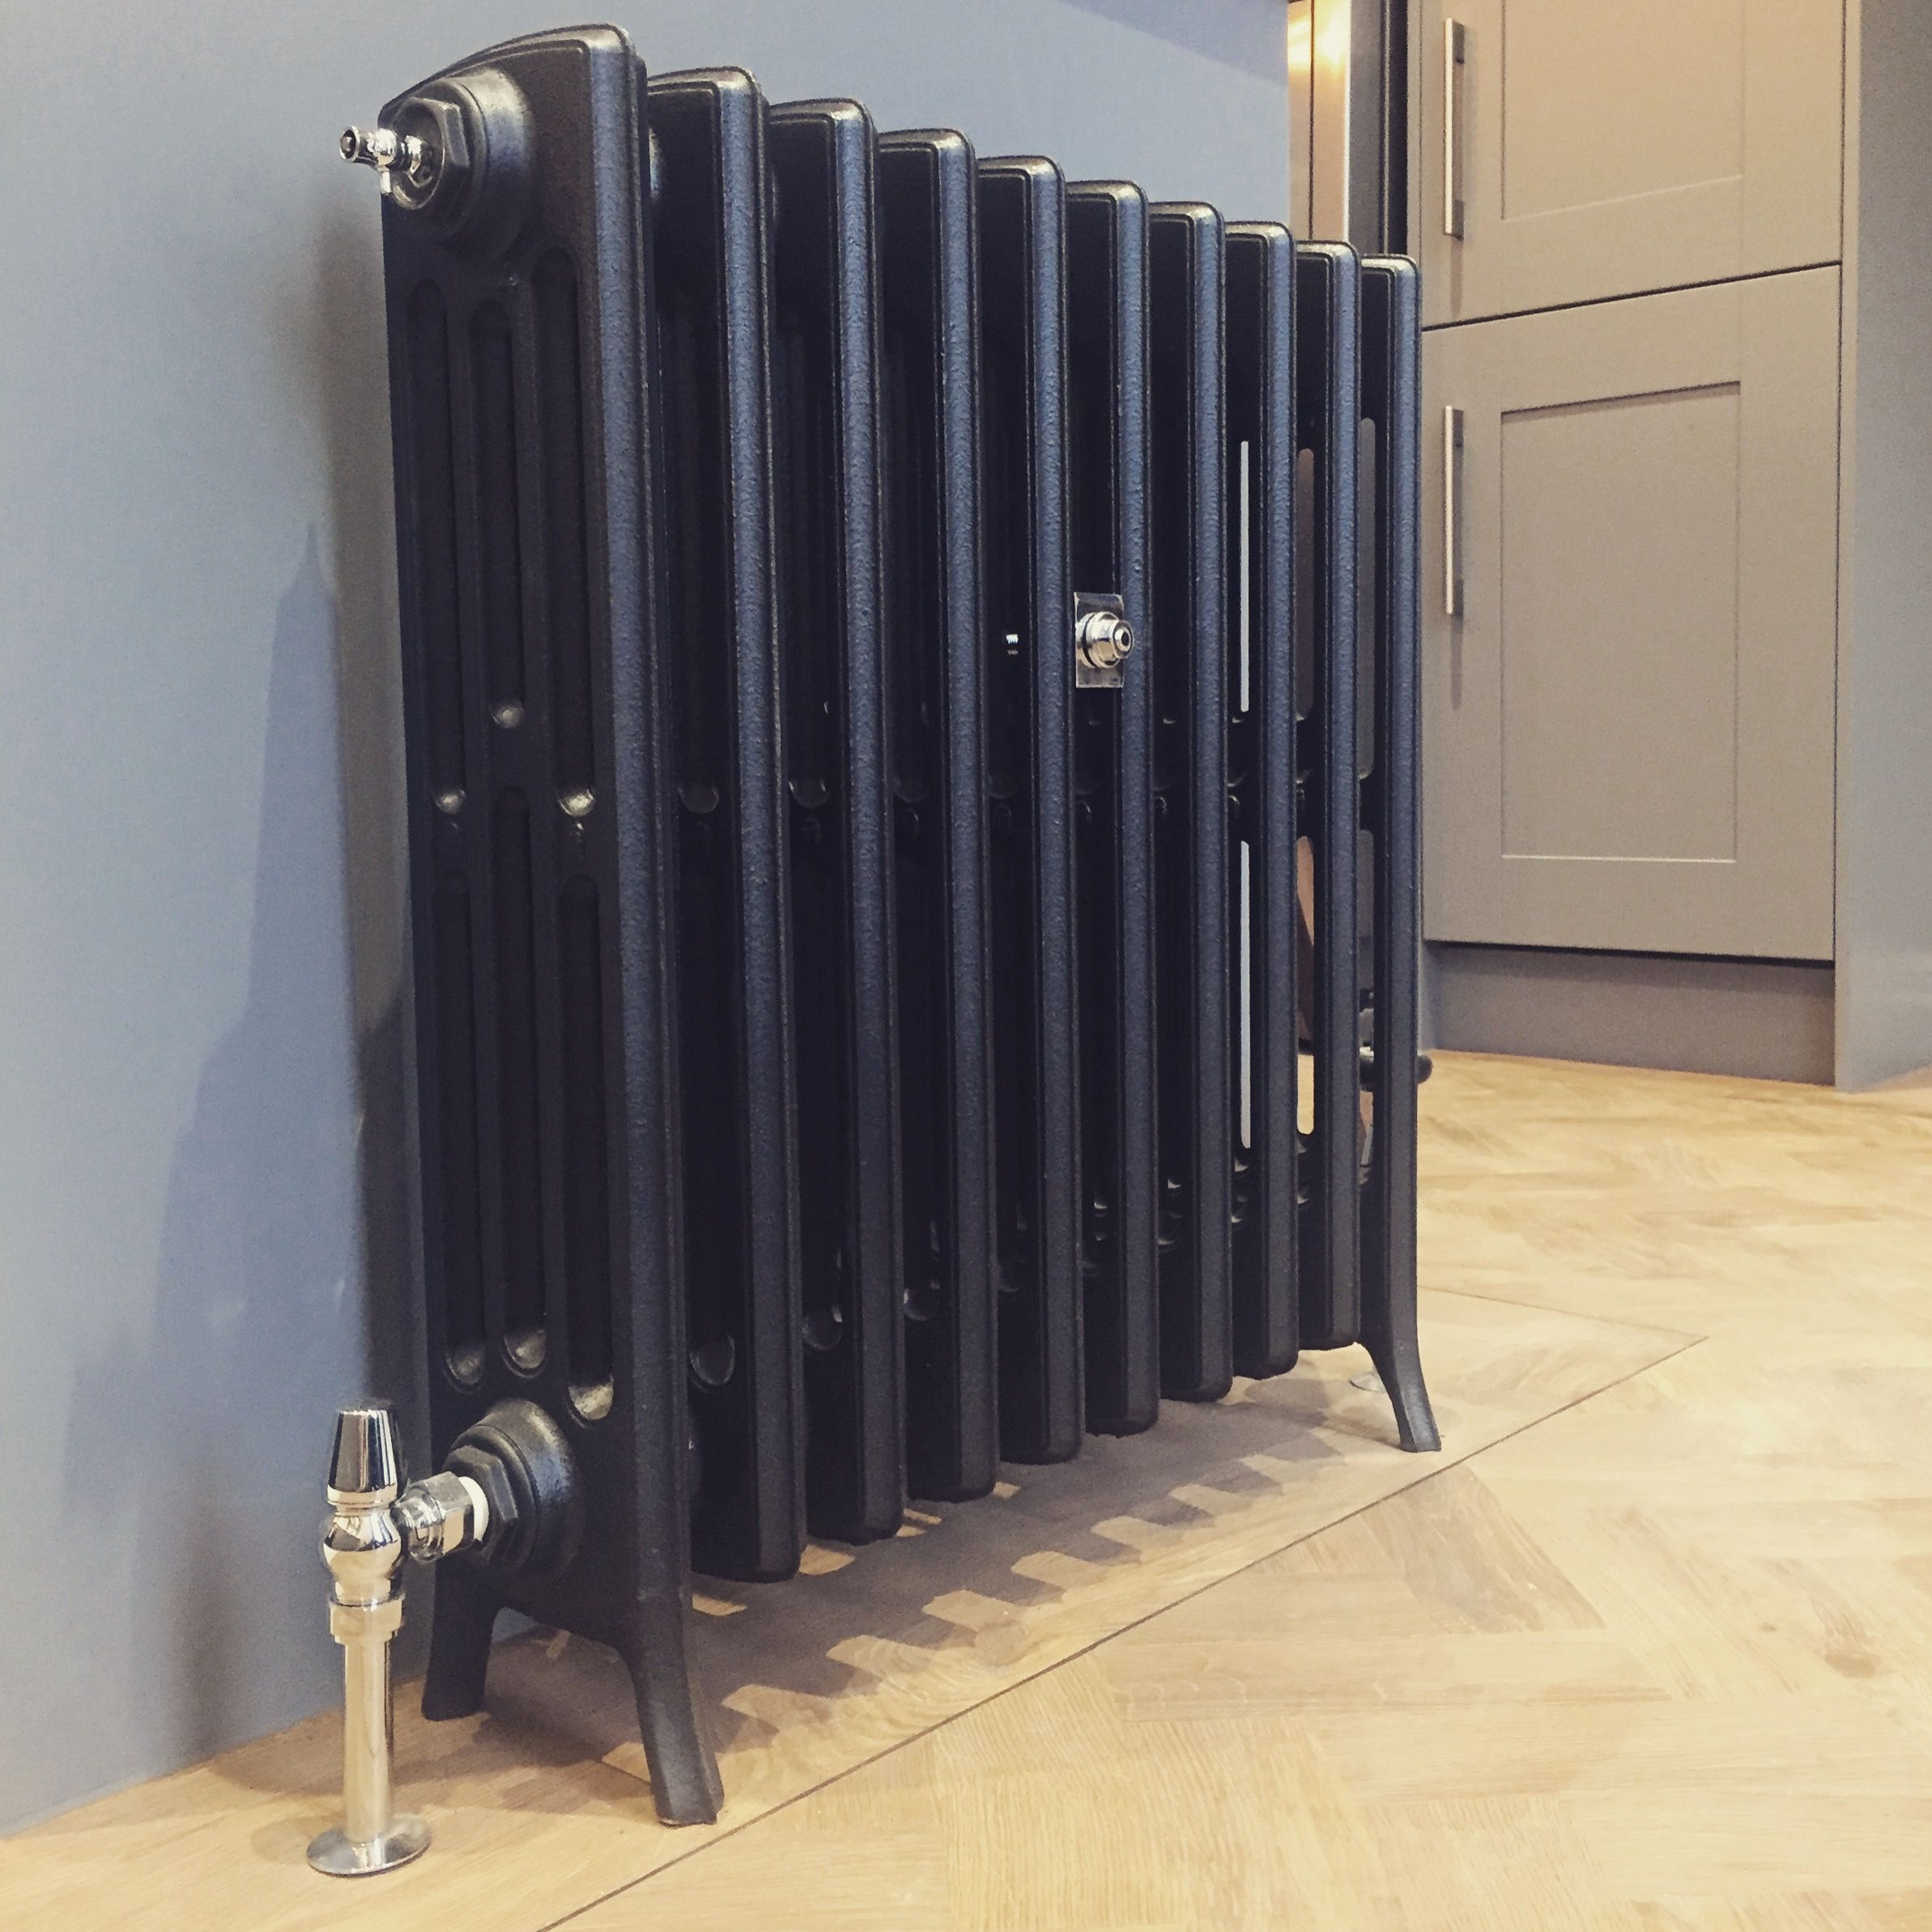 Graphite Grey Cast Iron Radiator On Kitchen Island - Kitchen